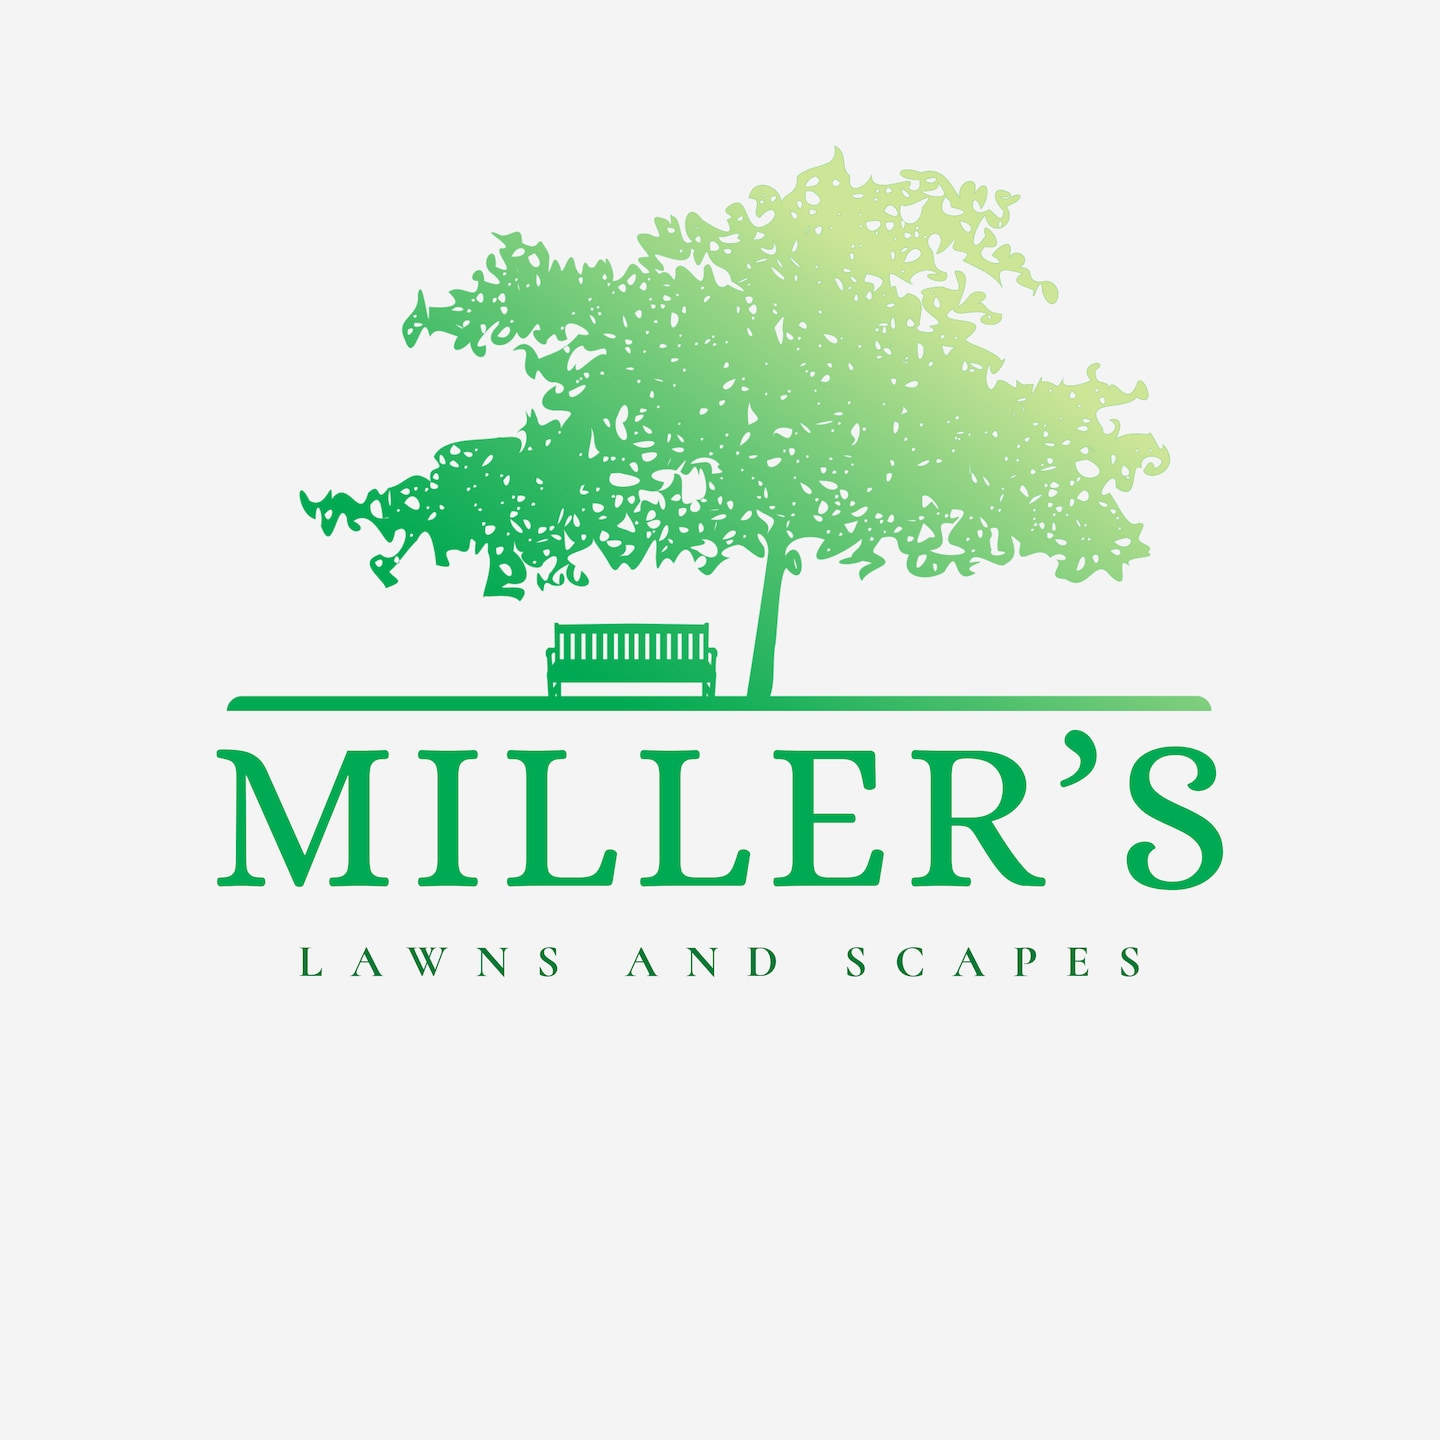 Millers Lawns and Scapes